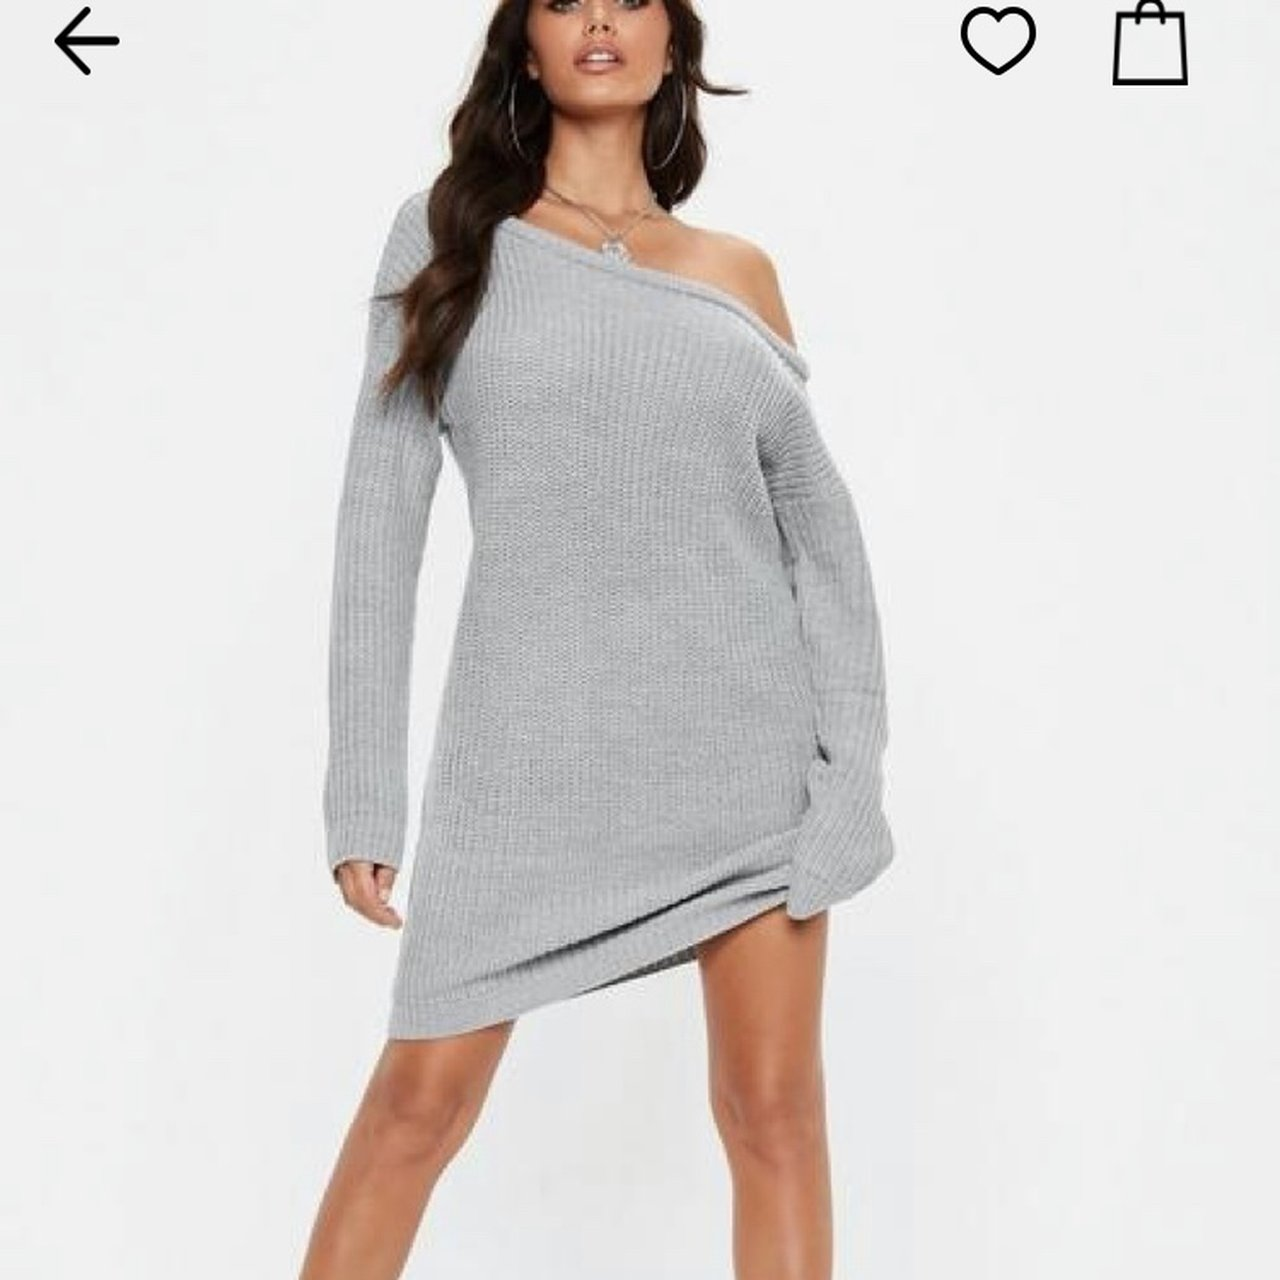 Missguided grey off shoulder knitted jumper dress S M - will - Depop 8110ec92b